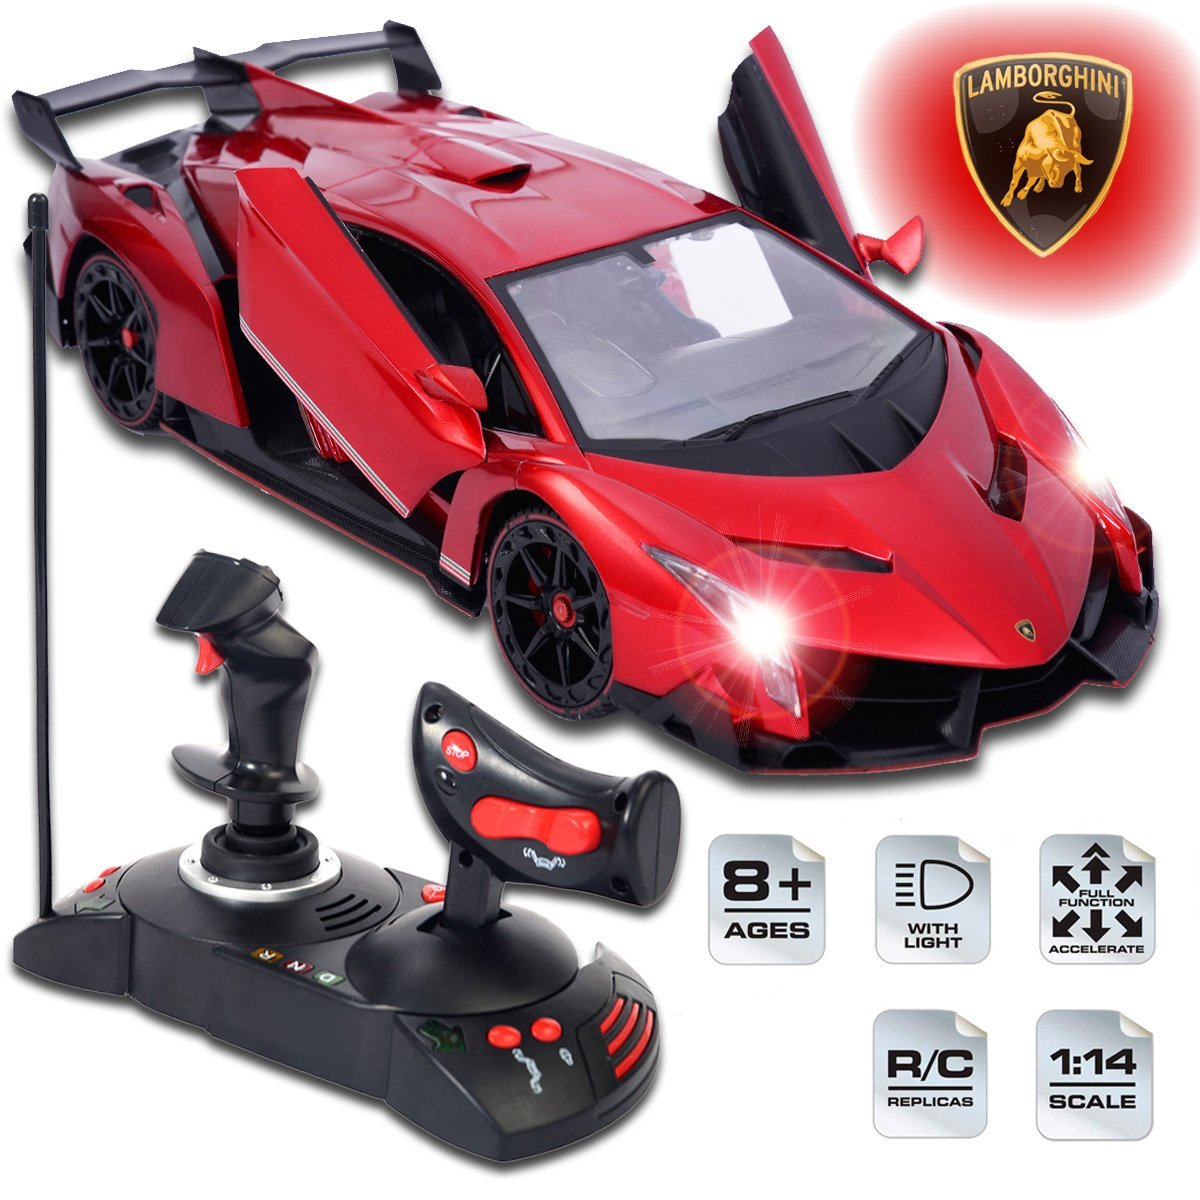 Lamborghini Veneno RC car remote control scale model 1/24 in red passion color.